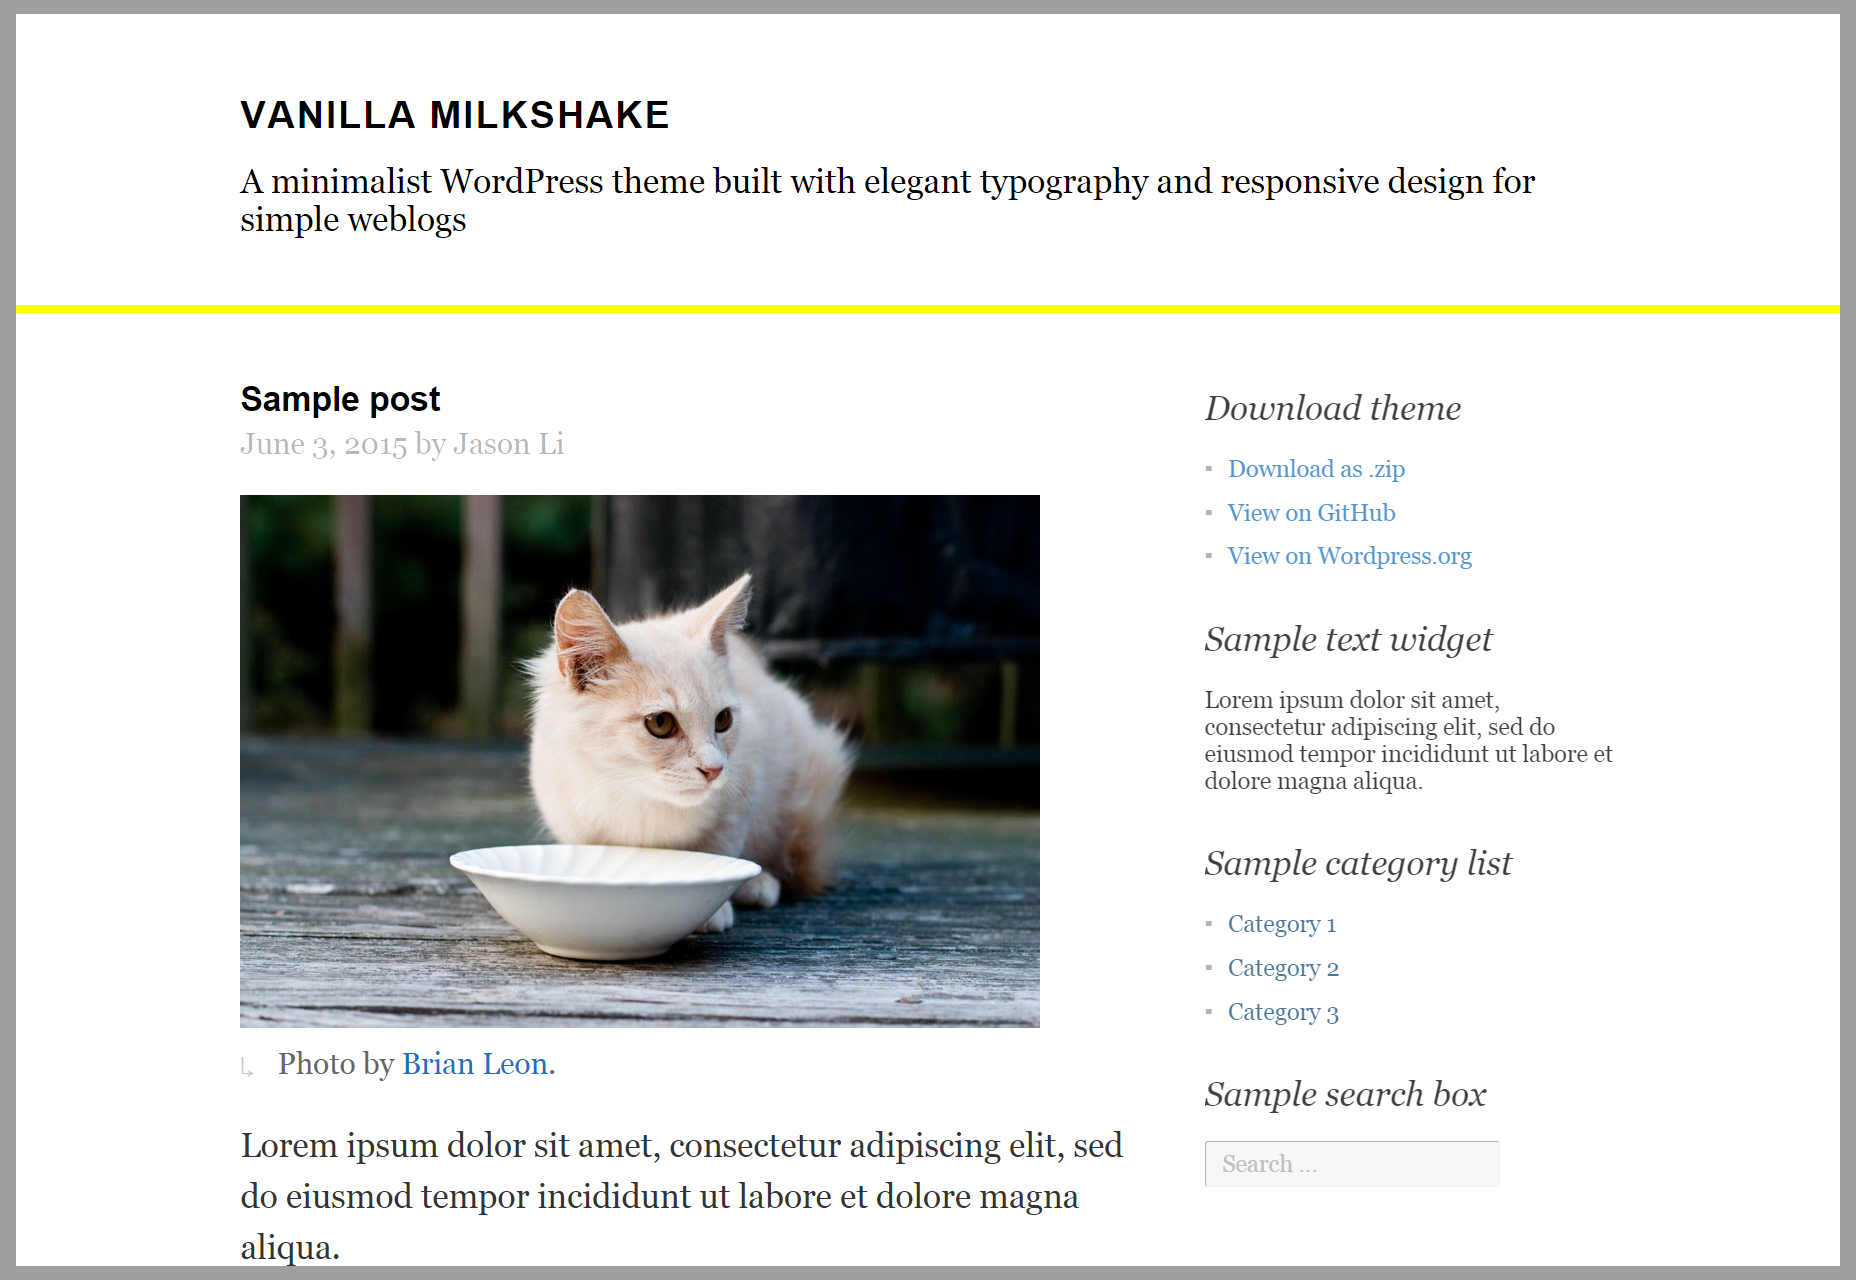 Vanilla Milkshake: Simple Blogging WordPress Theme